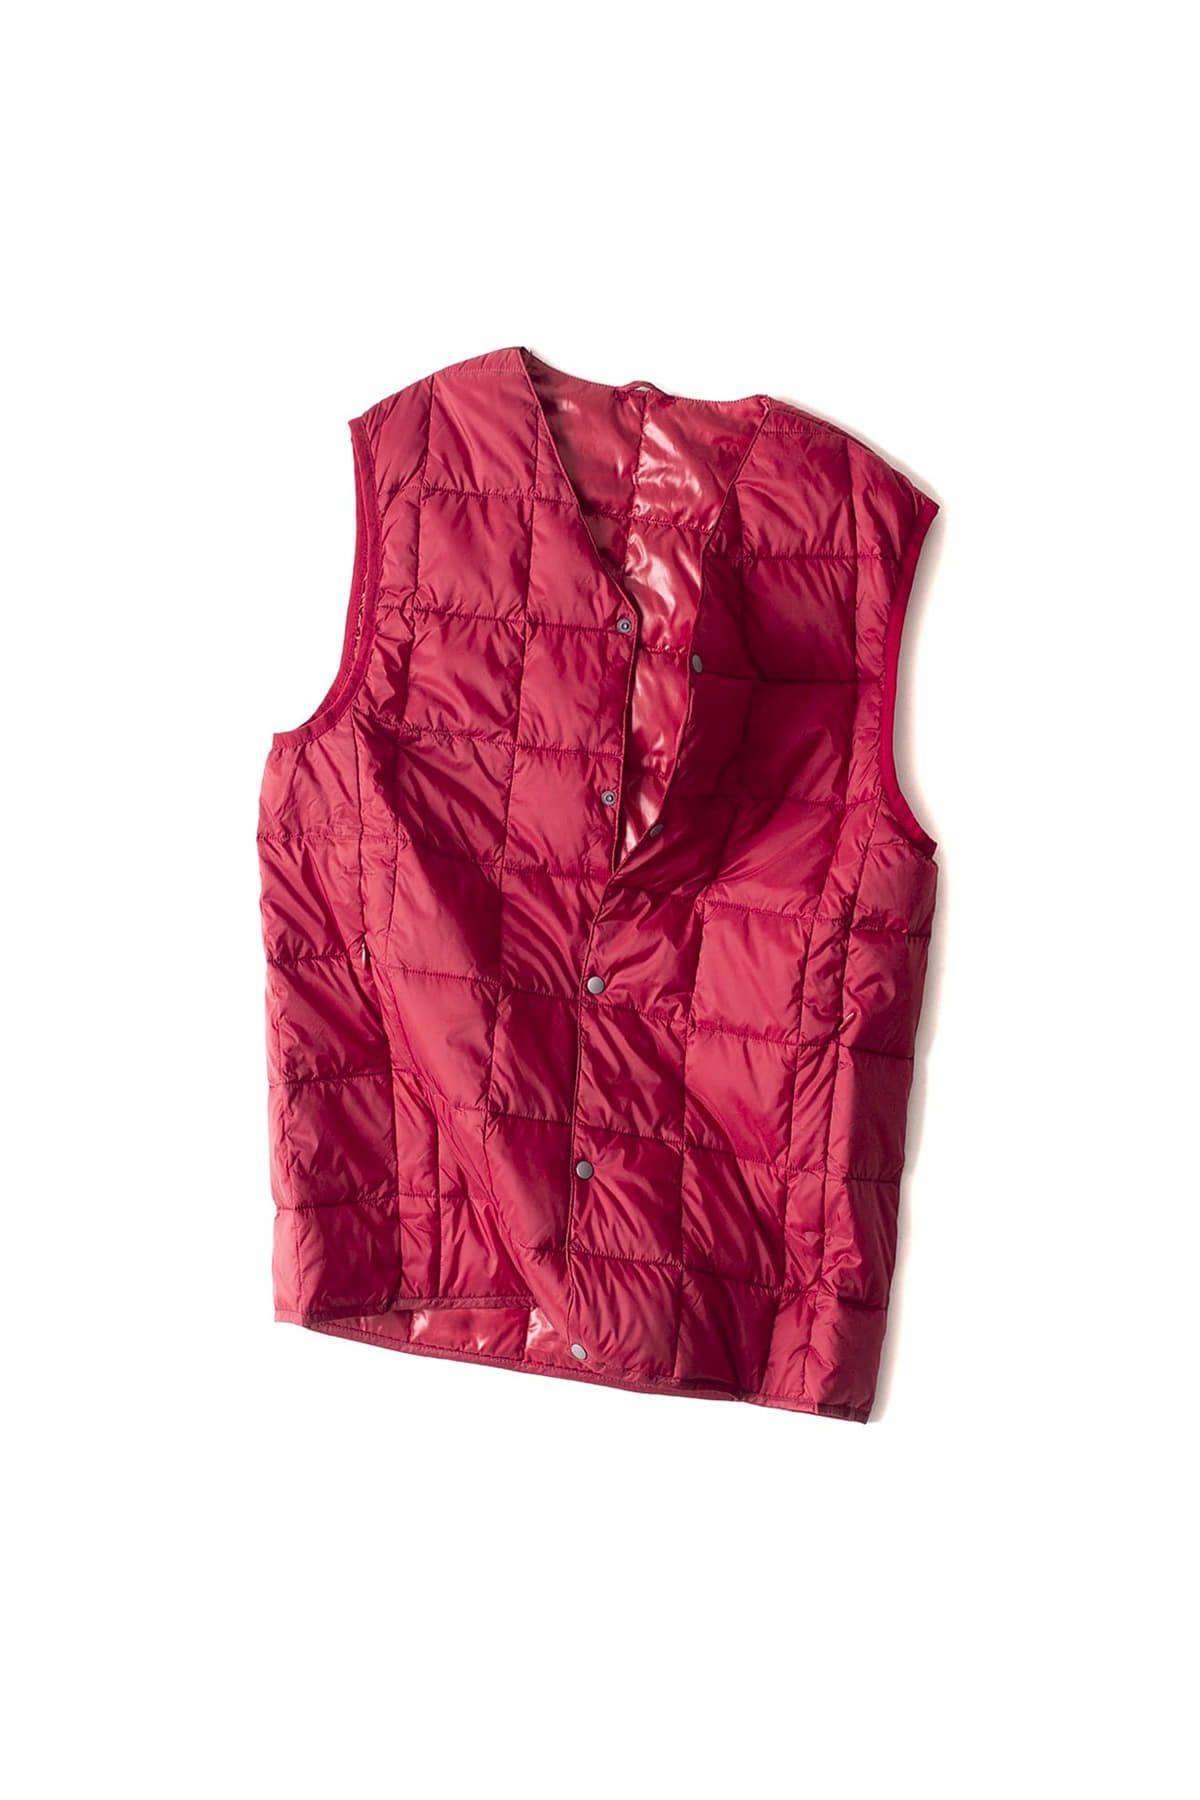 TAION :  V Neck Button Down Vest (Dark Red)